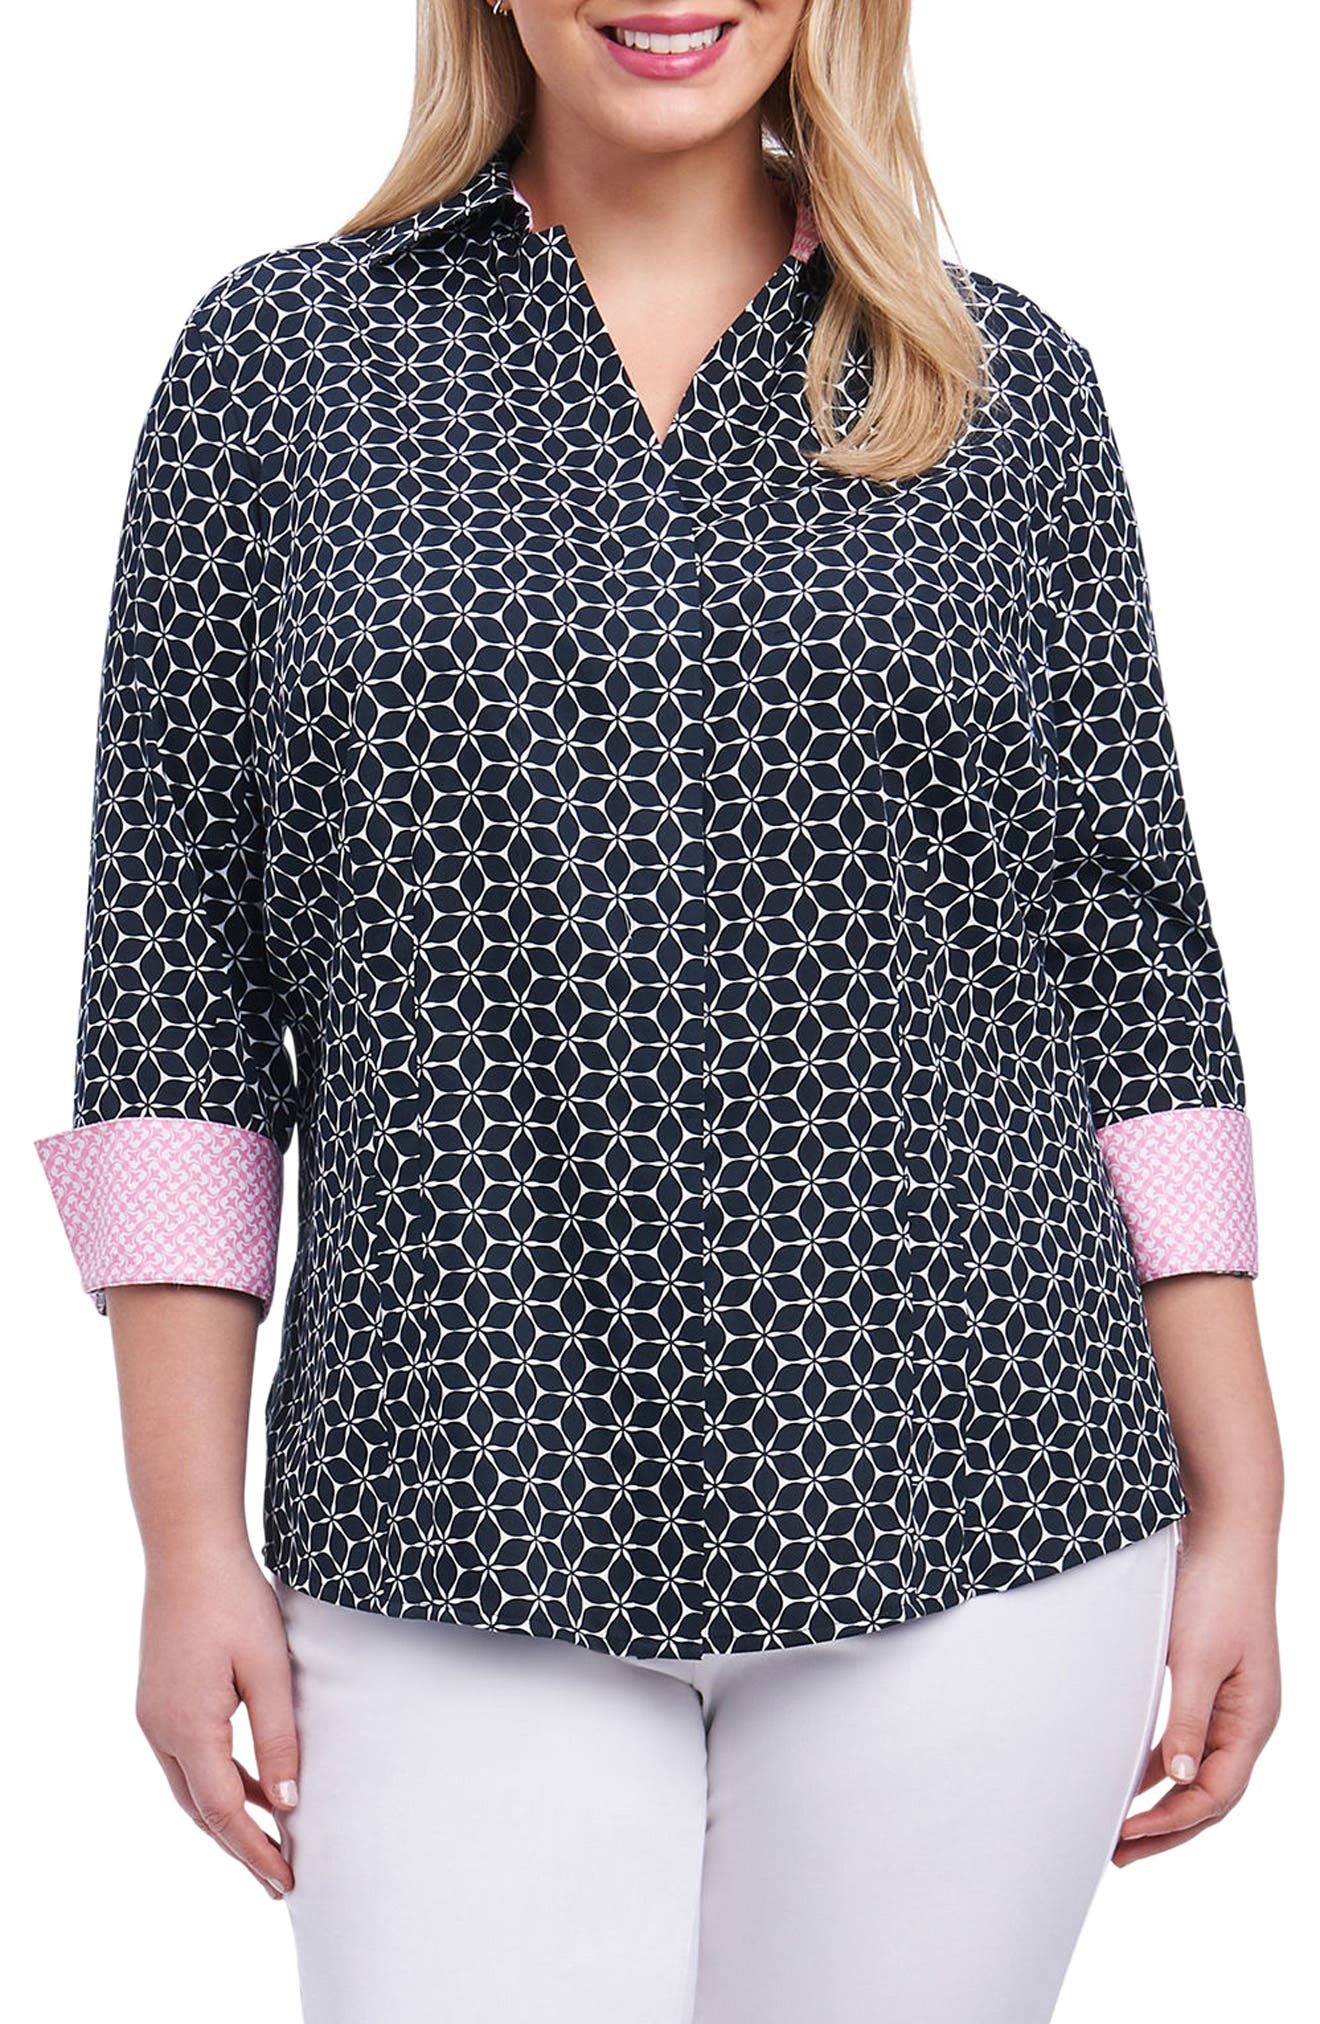 Taylor Optic Floral Print Shirt,                         Main,                         color,